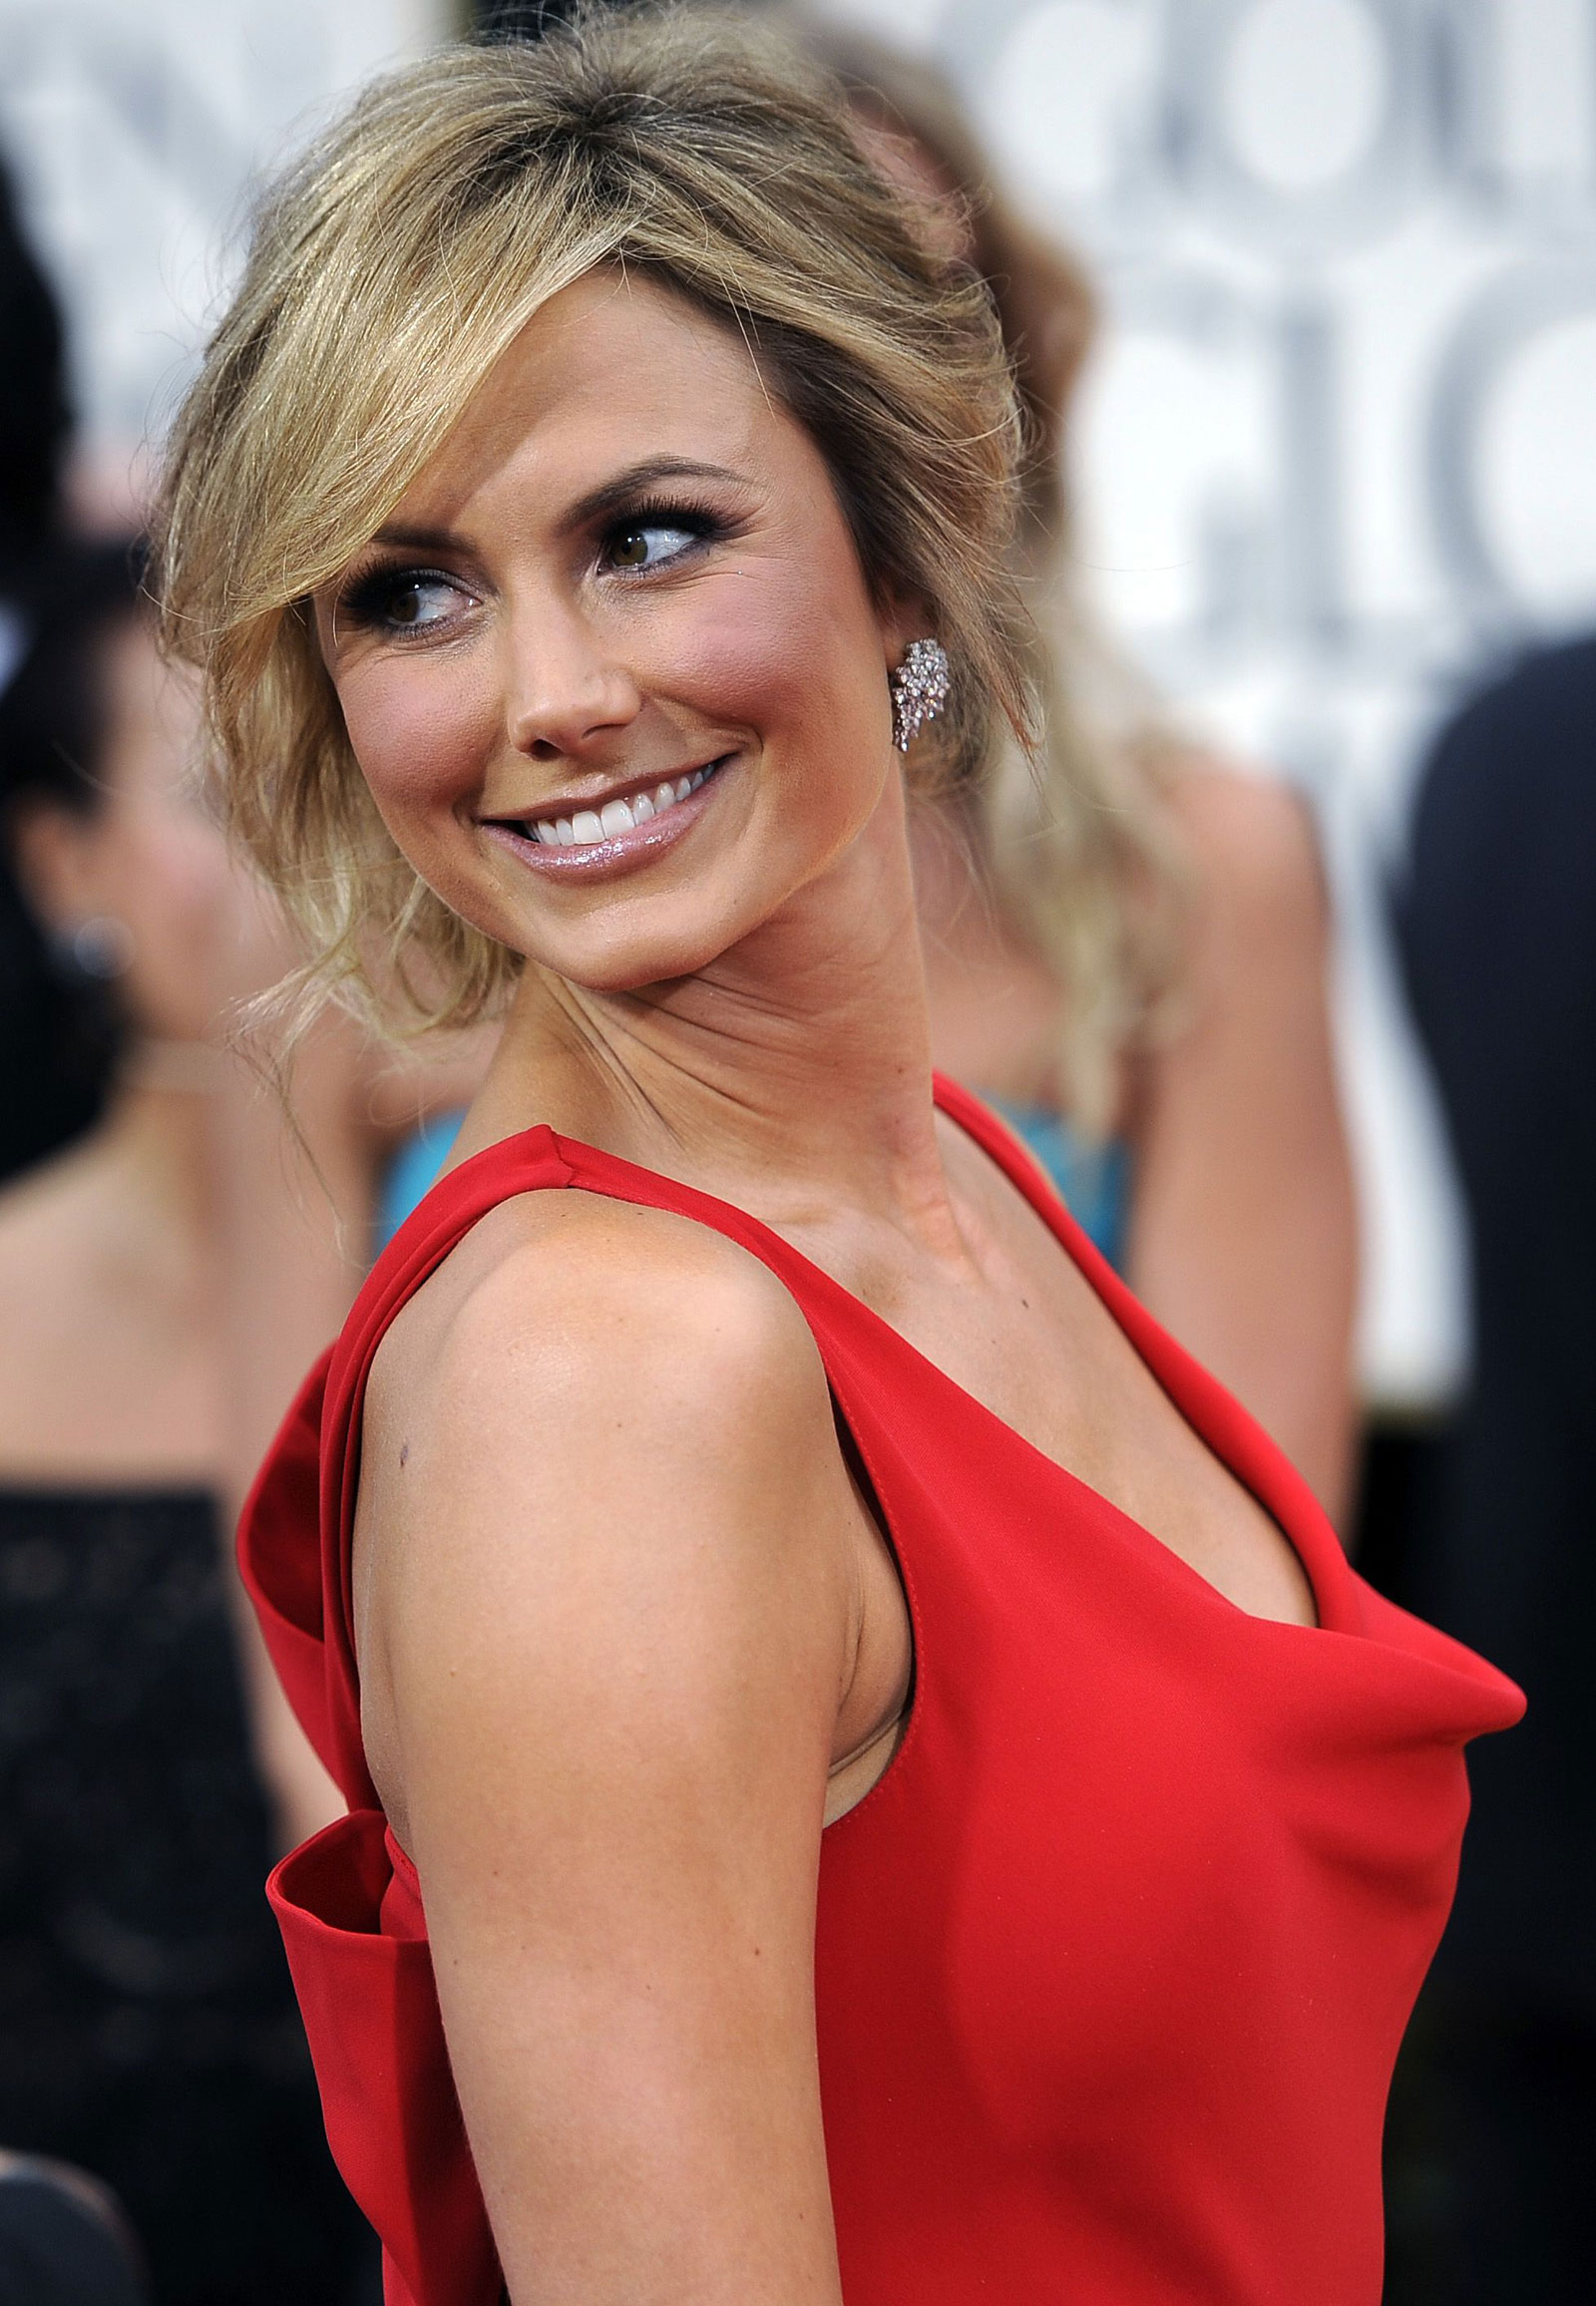 <b>Stacy Keibler</b> - Stacy-Keibler-at-69th-Annual-Golden-Globe-Awards-in-Los-Angeles-11